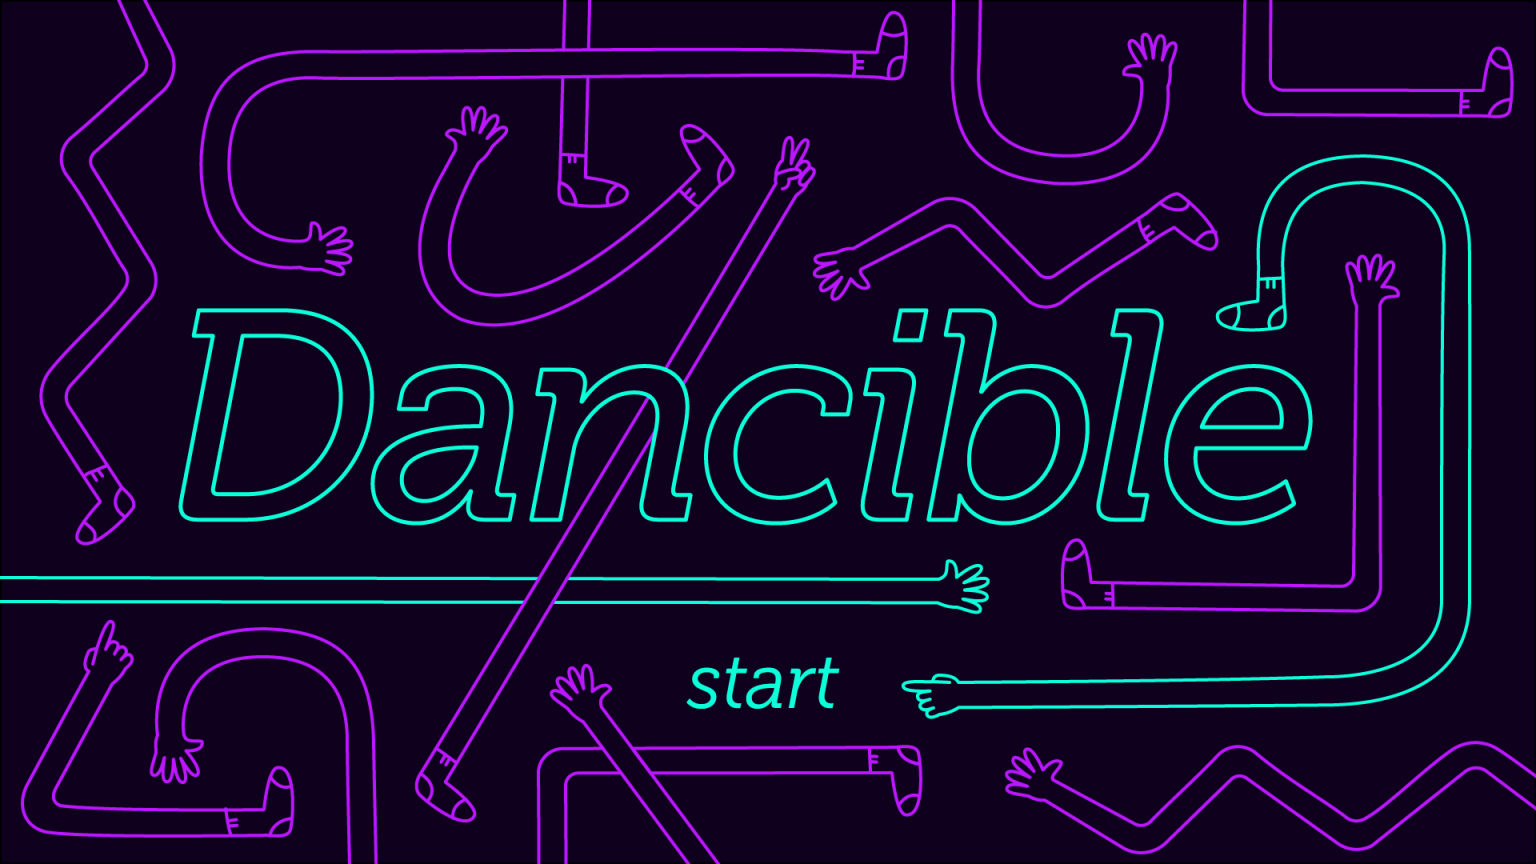 Dancible start screen